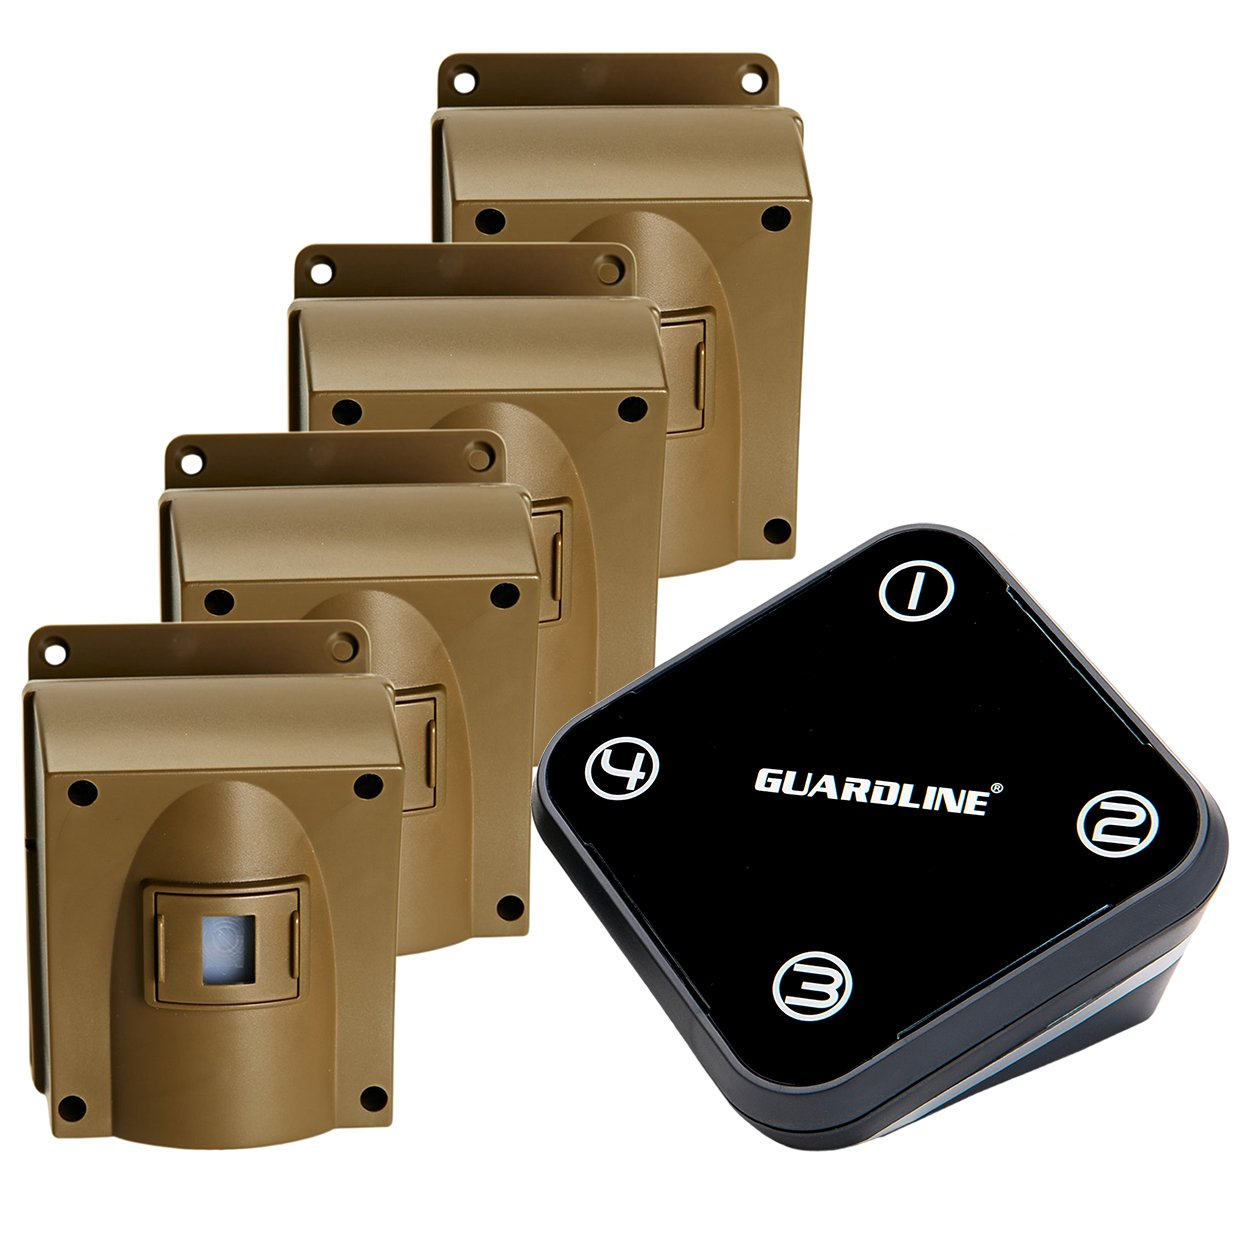 Guardline Wireless Driveway Alarm w Four Sensors Kit Outdoor Weather Resistant Motion Sensor Detector- Best DIY Security Alert System- Protect Home, Perimeter, Yard, Garage, Gate, Pool